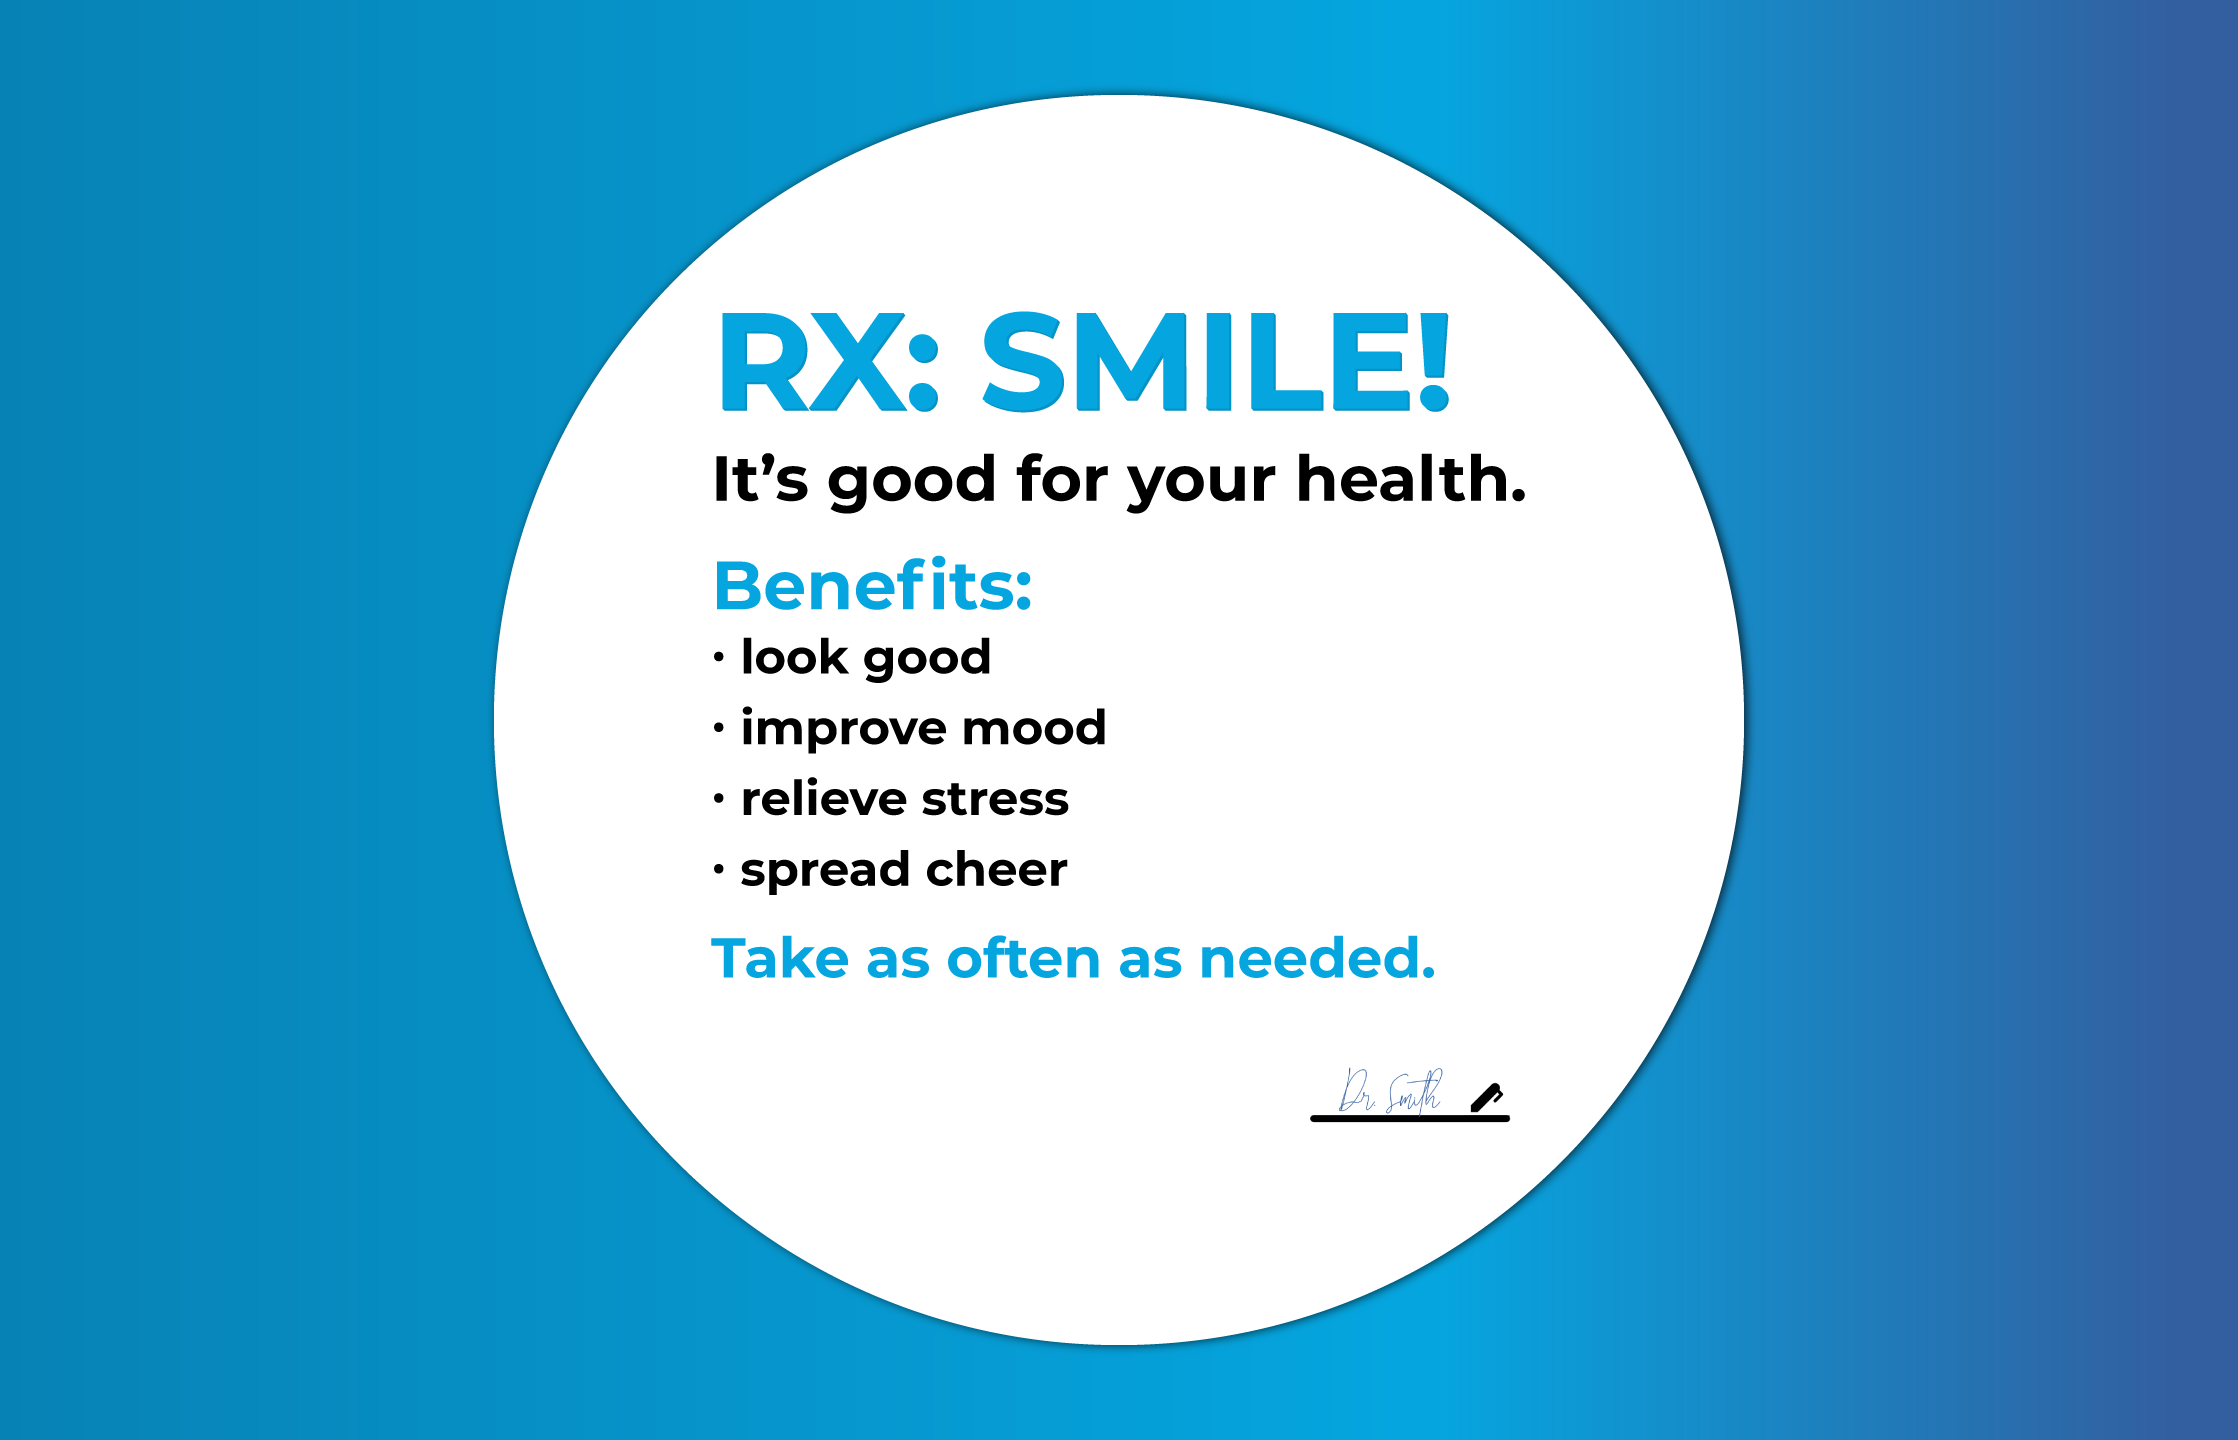 Rx: Smile. The benefits of smiling include looking good, improved mood, stress relief, and spreading cheer.